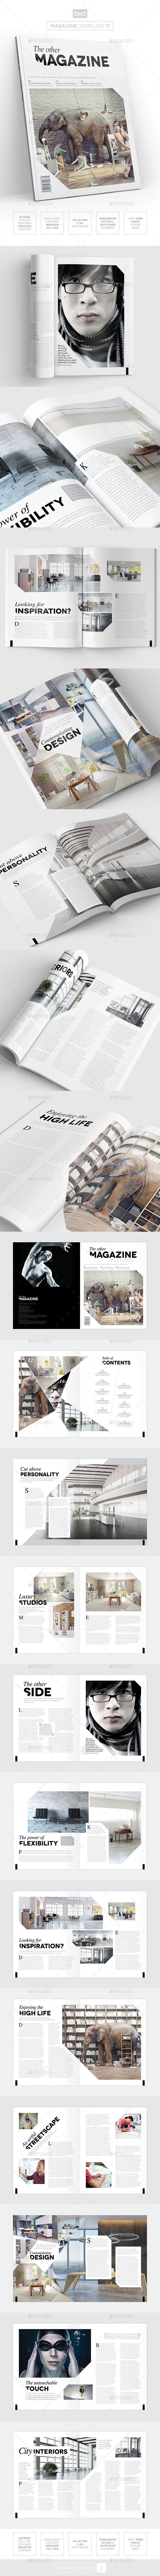 Magazine Template - InDesign 24 Page Layout V11 - Magazines Print Templates